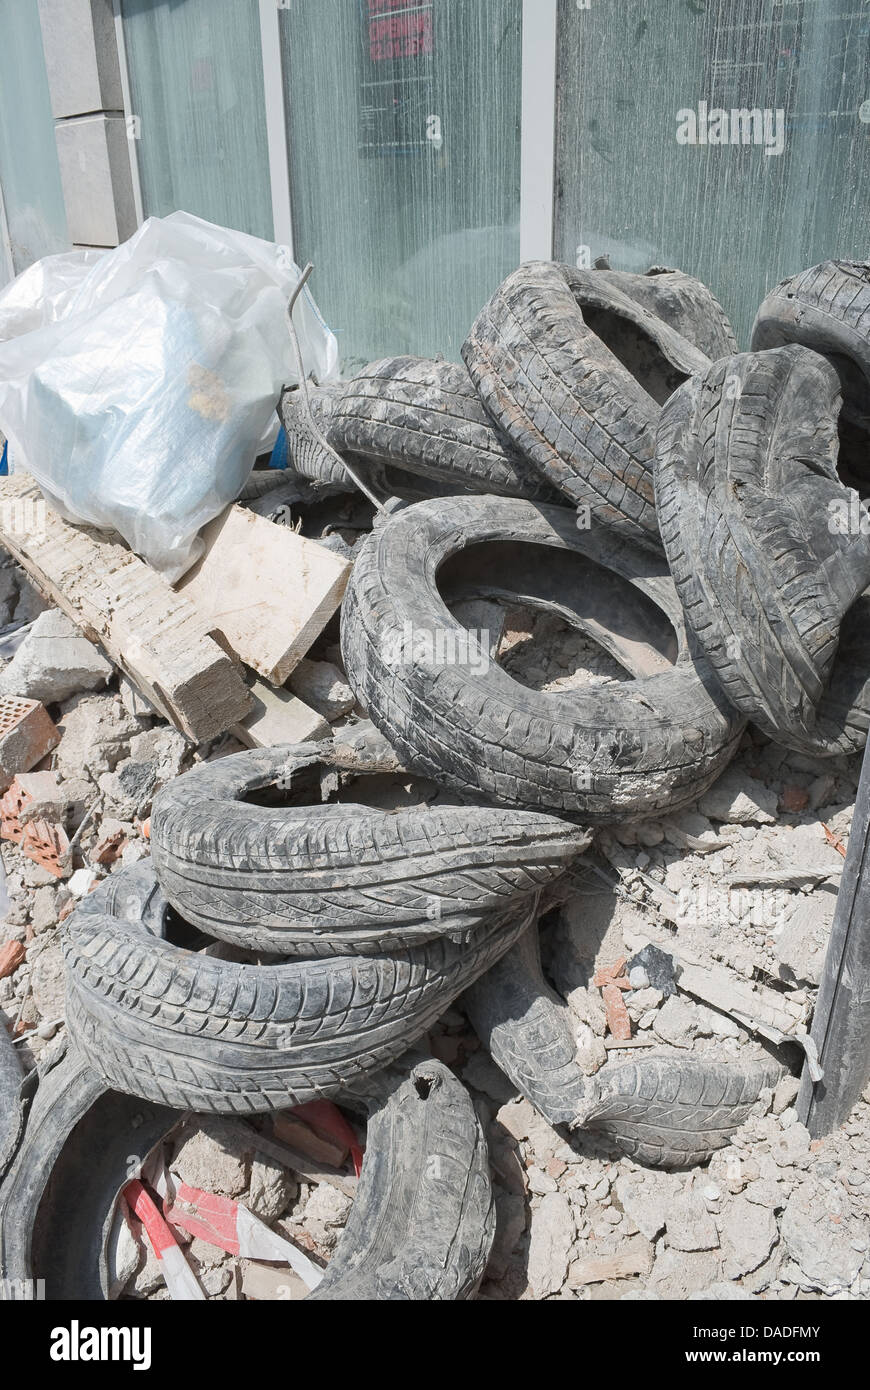 Rubble and Old Tires from Demolition as Sign of Urban Renewal - Stock Image